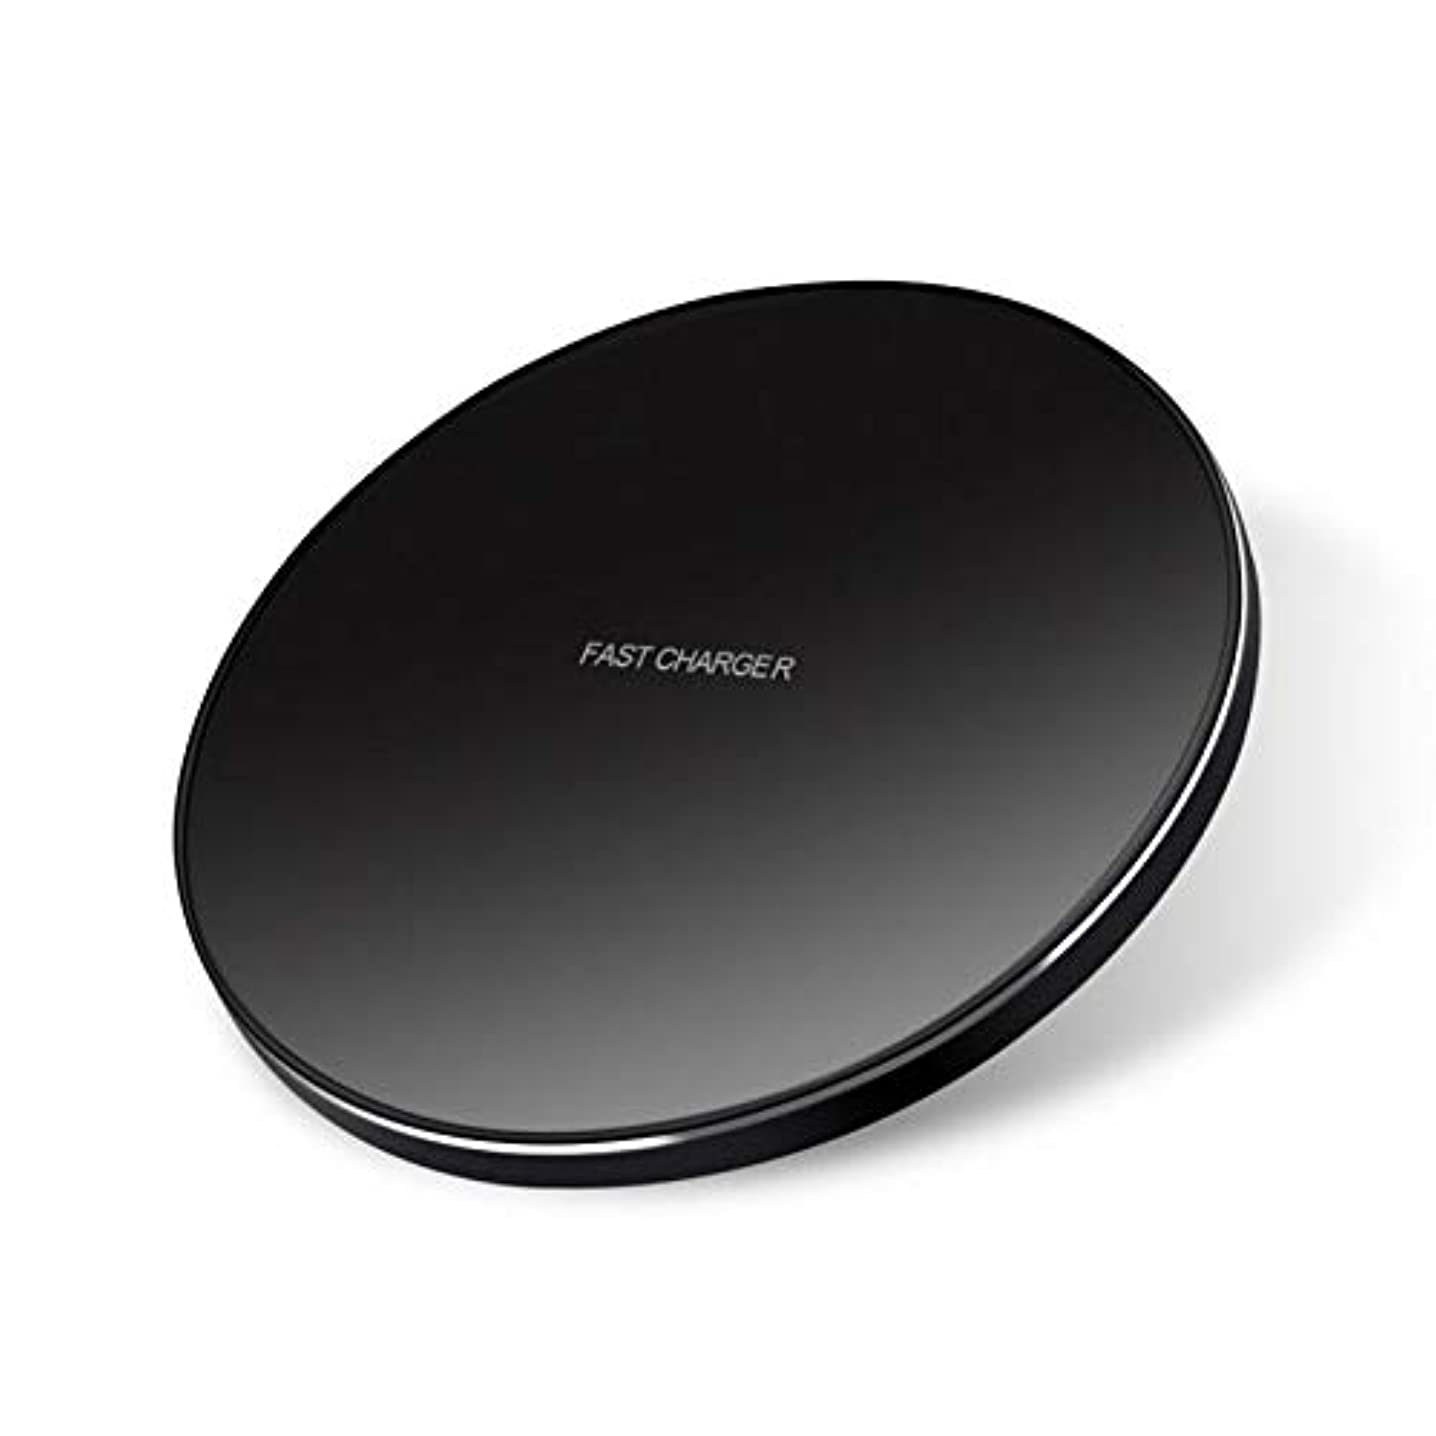 7.5W and 10W Fast Charge Wireless Charger Slim Charging Pad Compact Power Adapter Black [Non-Slip] for Cricket Samsung Galaxy S9 (G960UZKAAIO) - Cricket Samsung Galaxy S9+